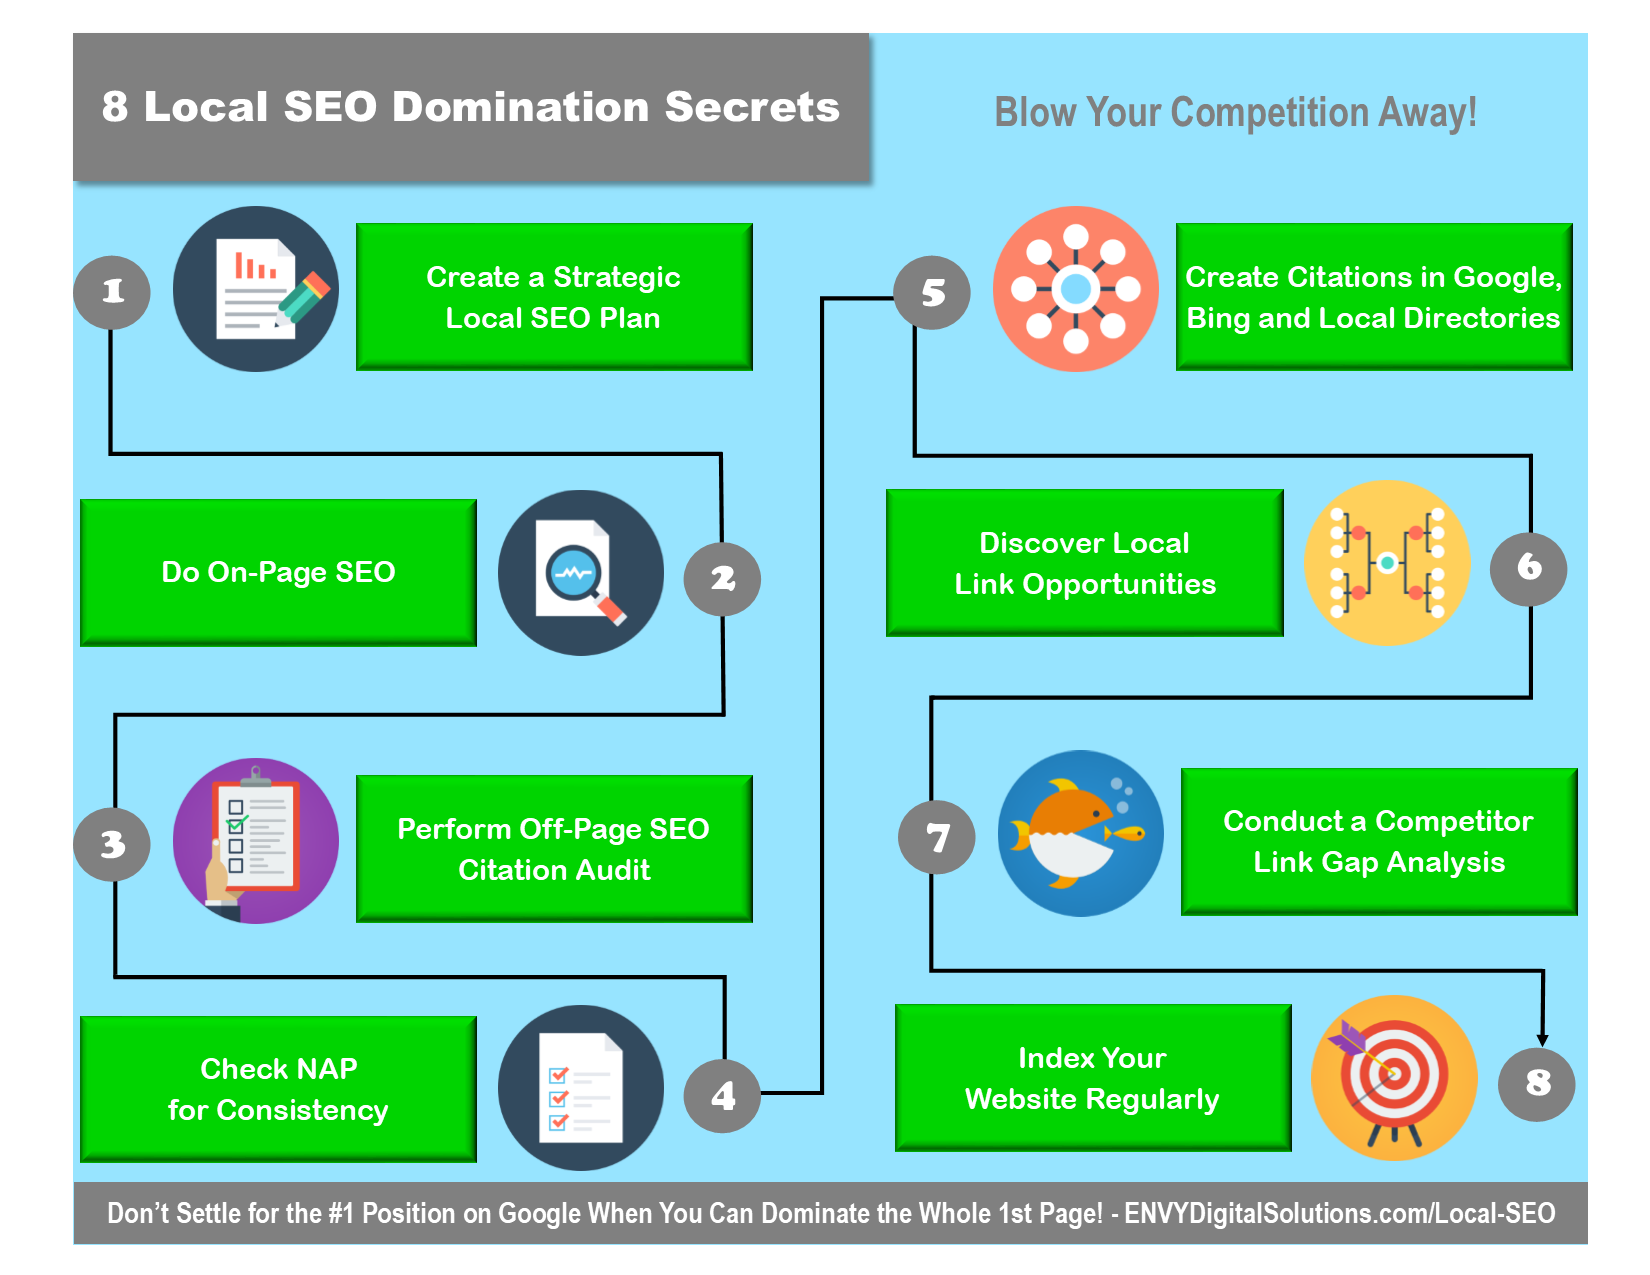 Image of 8 Local SEO Domination Secrets Infographic